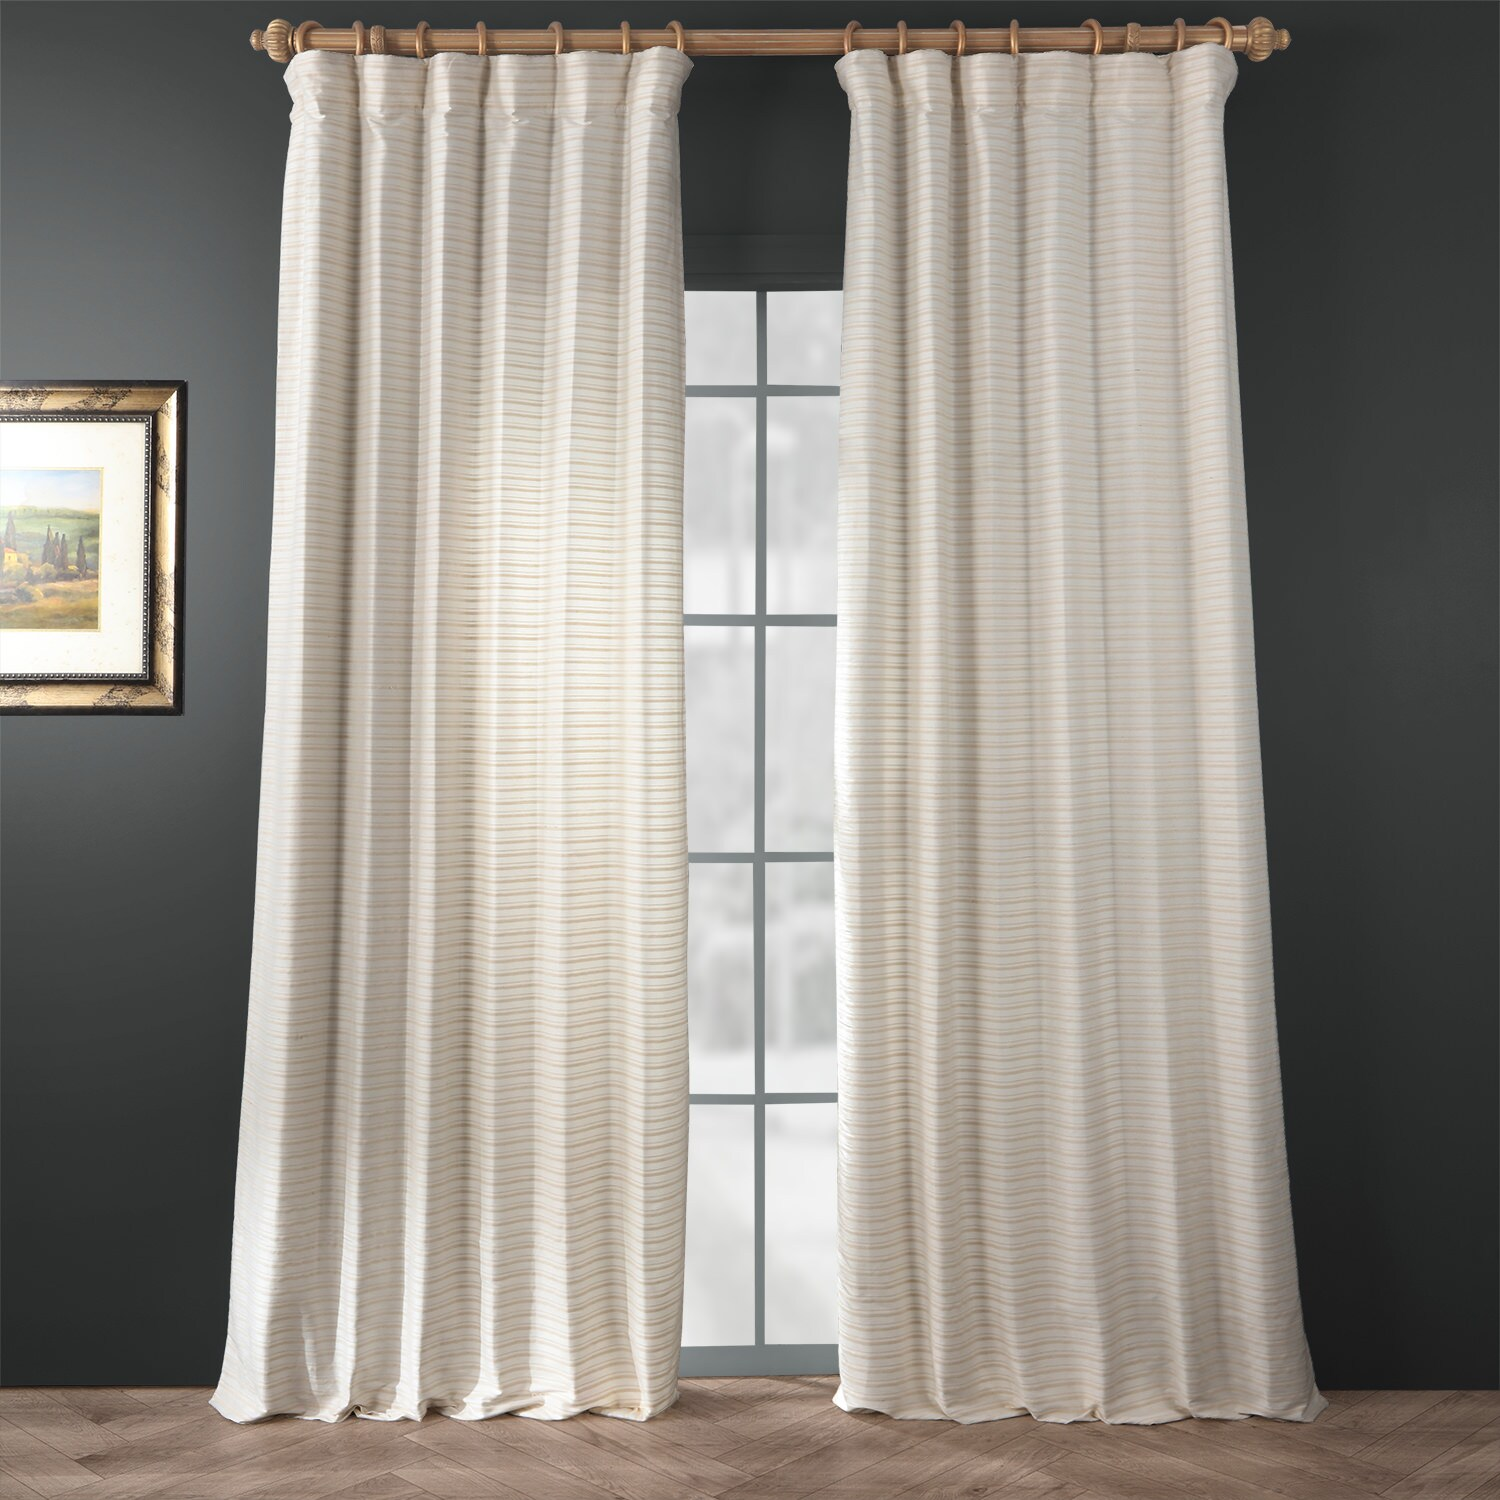 Whipped Cream Hand Weaved Cotton Curtain